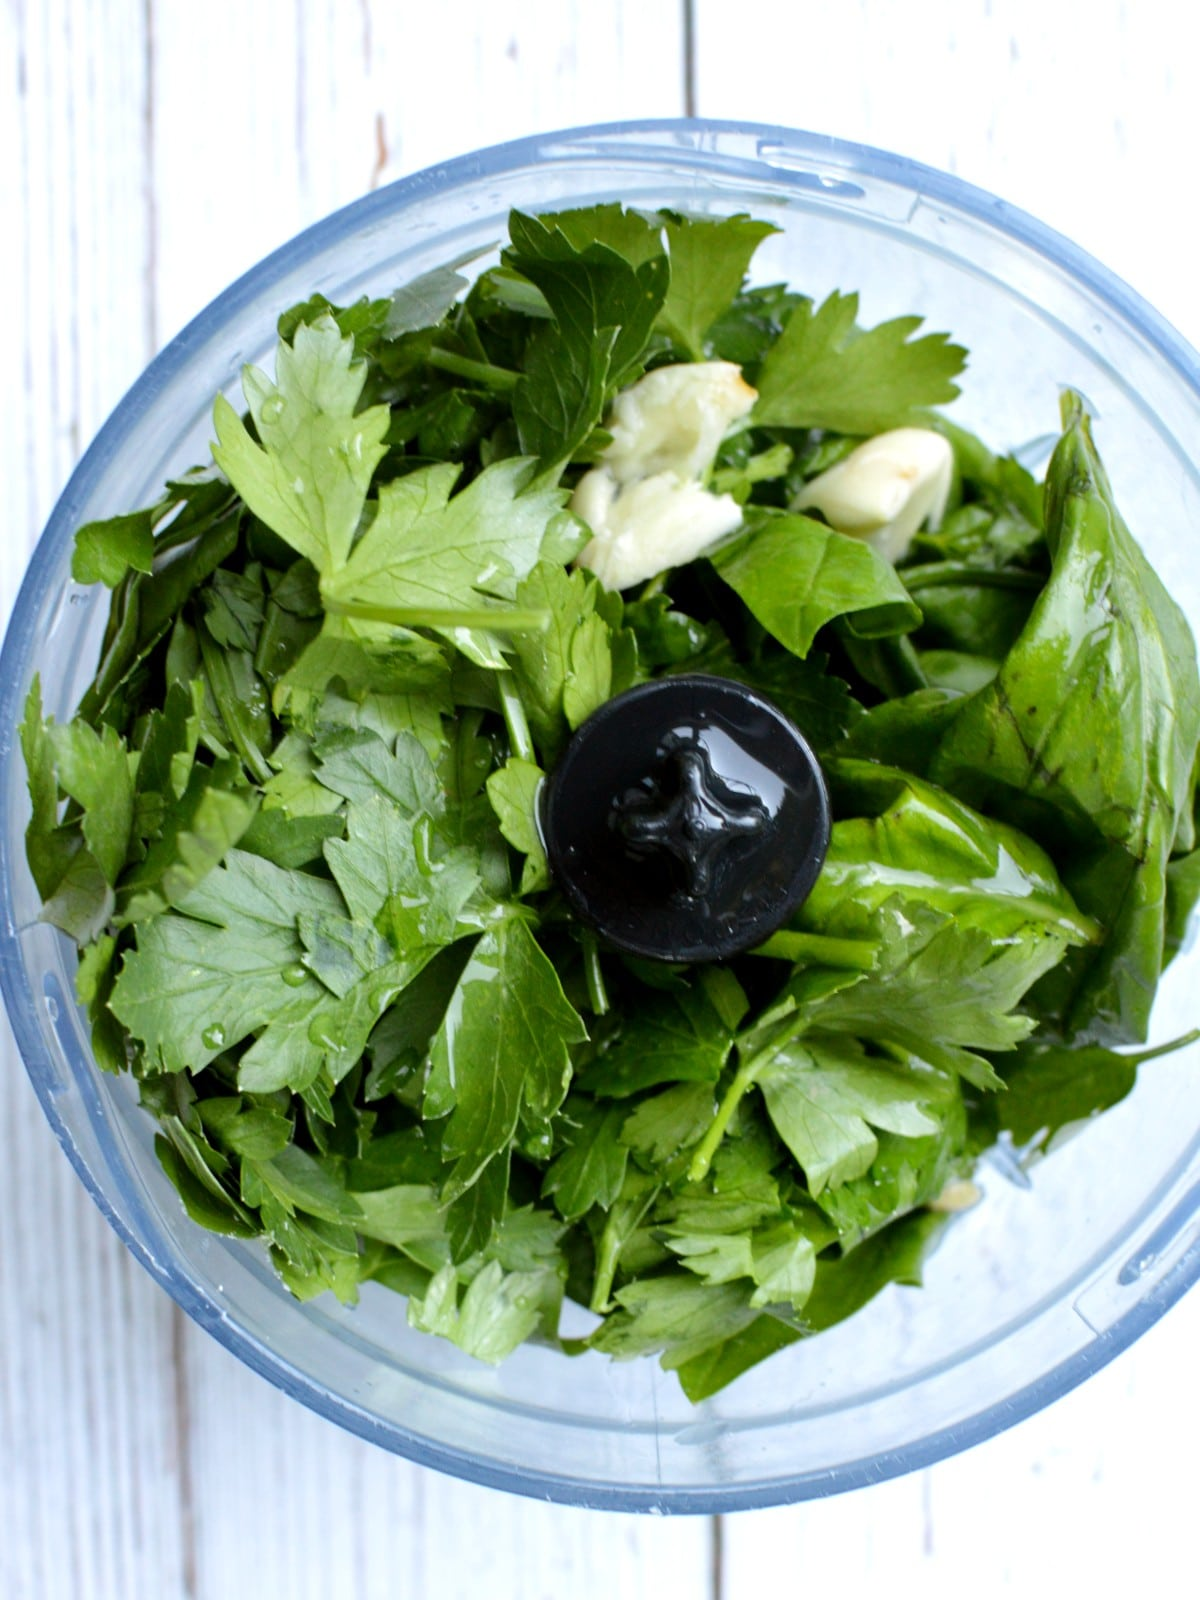 parsley and basil in a food processor